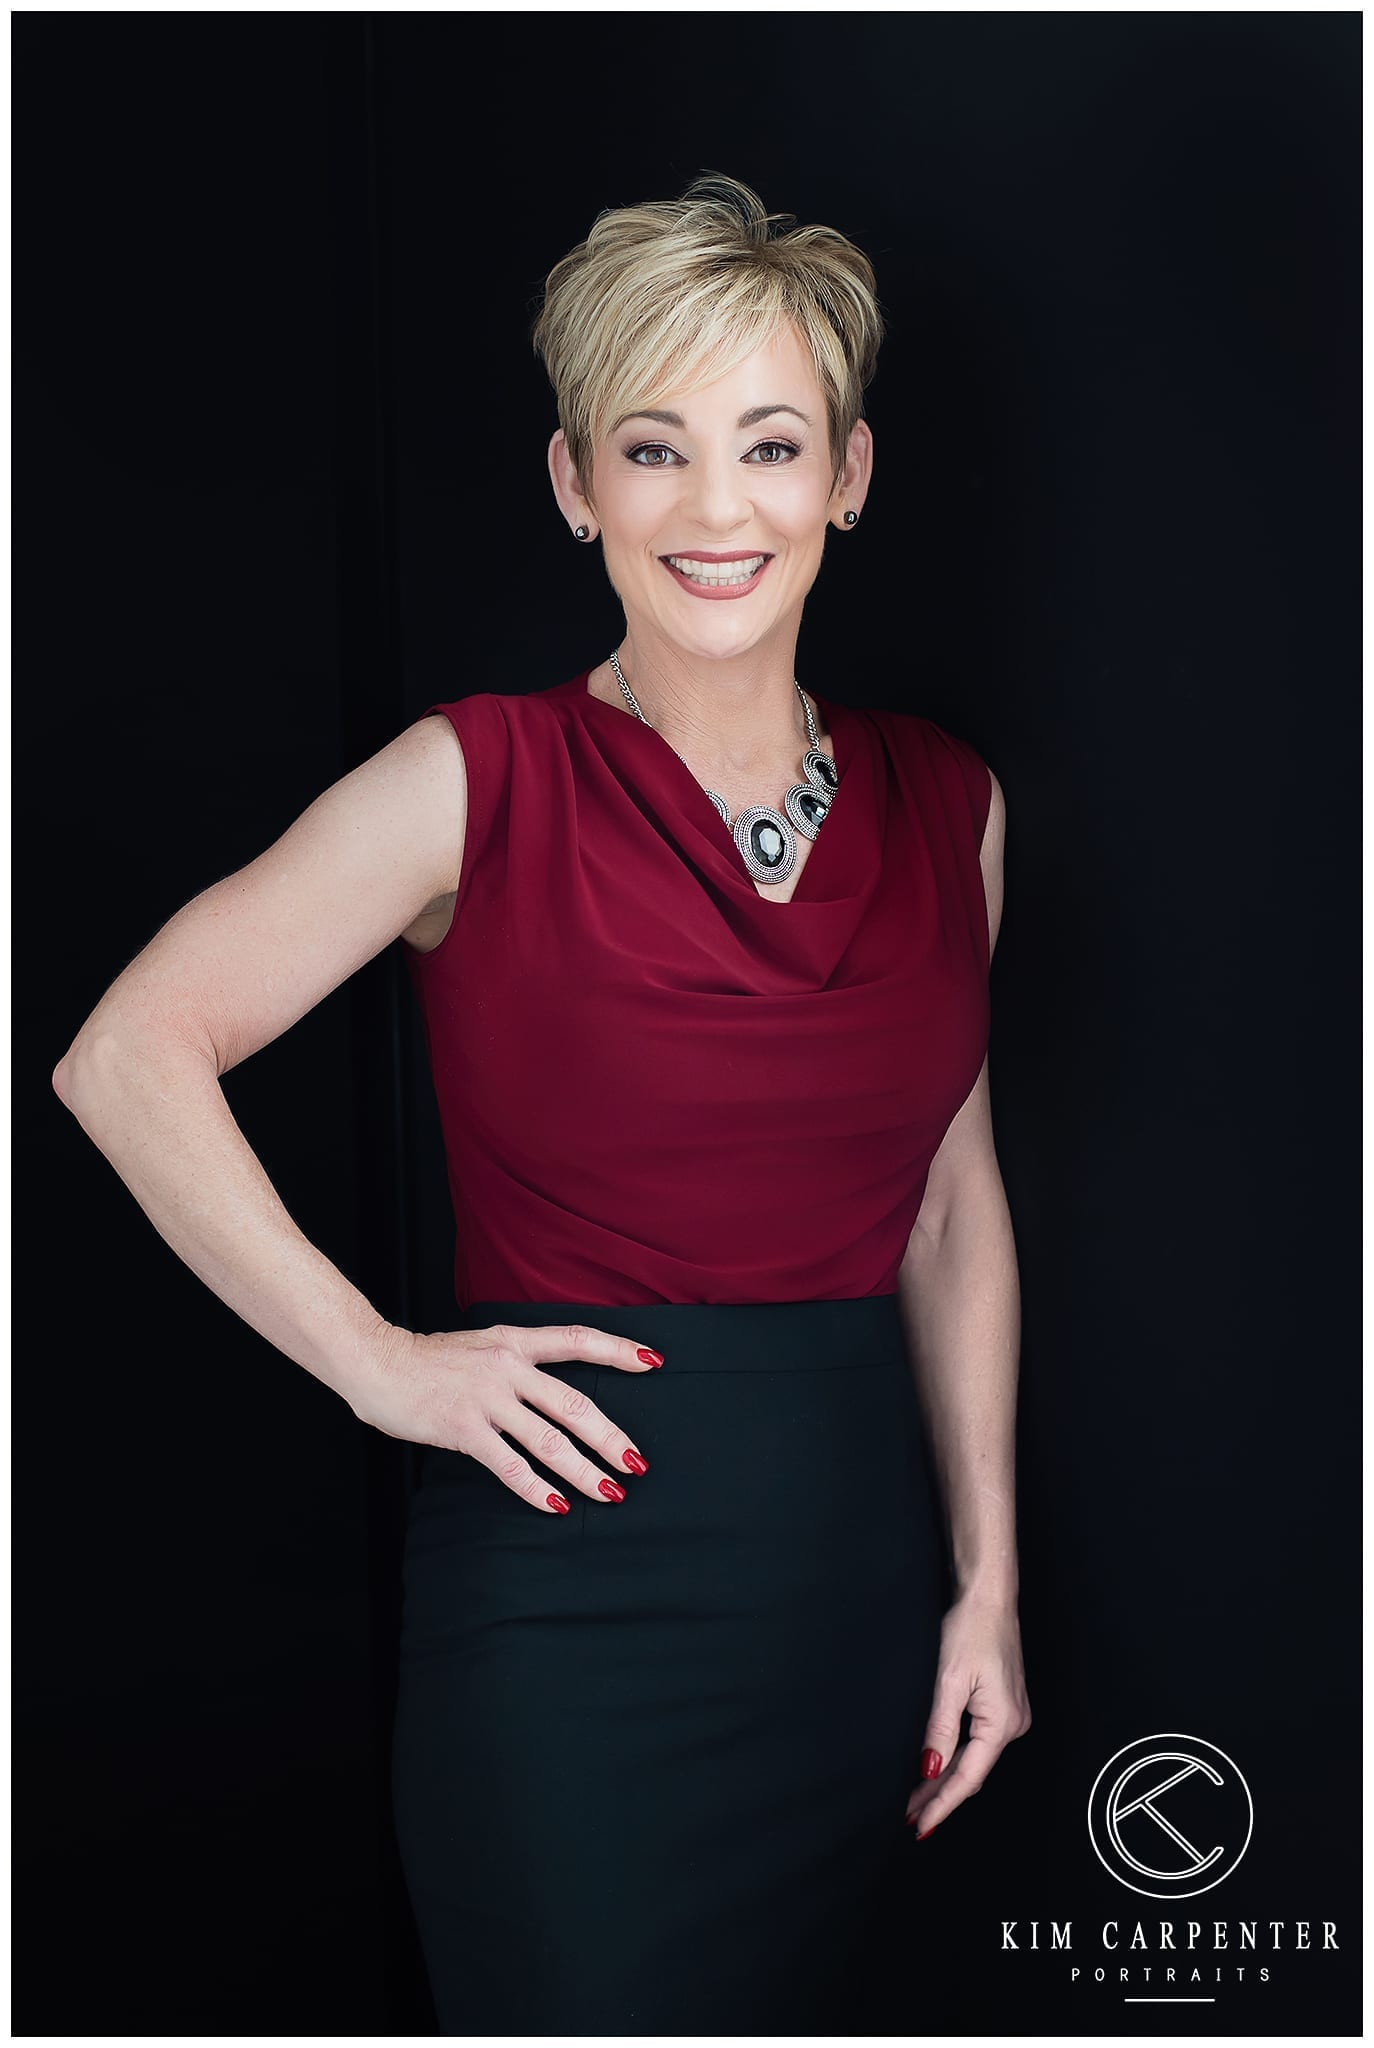 Woman wearing maroon shirt and black shirt, posing for camera with her hand on her hip. Lakeland Photographer, professional headshots